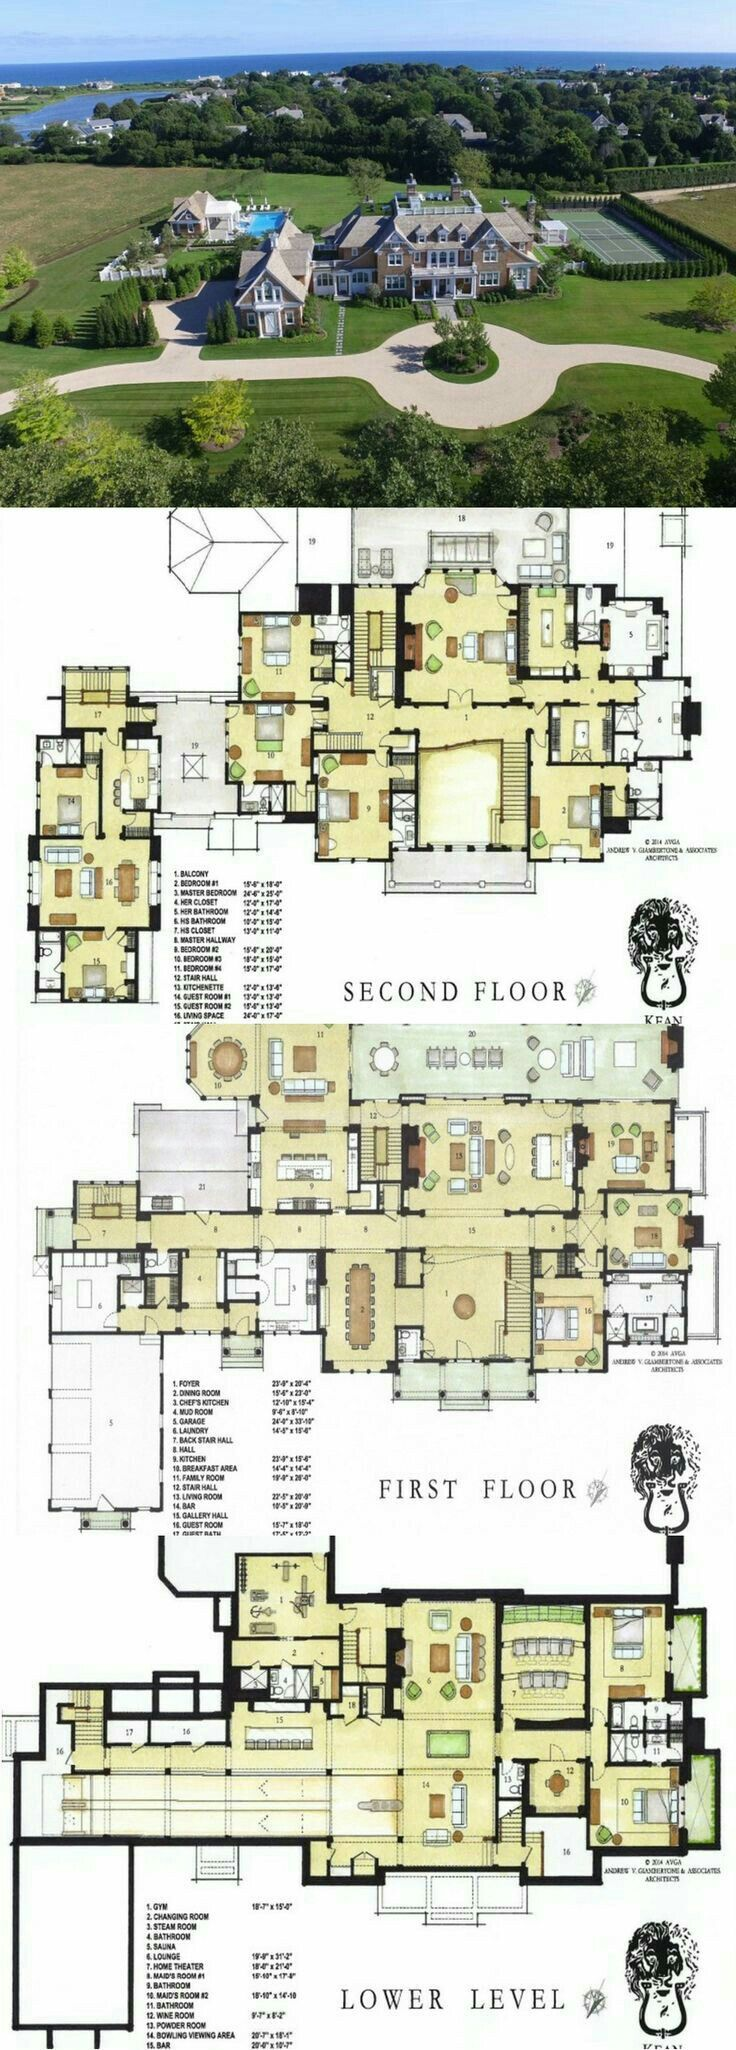 Why I Started The Maanor Sketch 9 This May Be Where I Landed If I Stayed The Course House Plans Mansion Mansion Floor Plan Mansion Plans